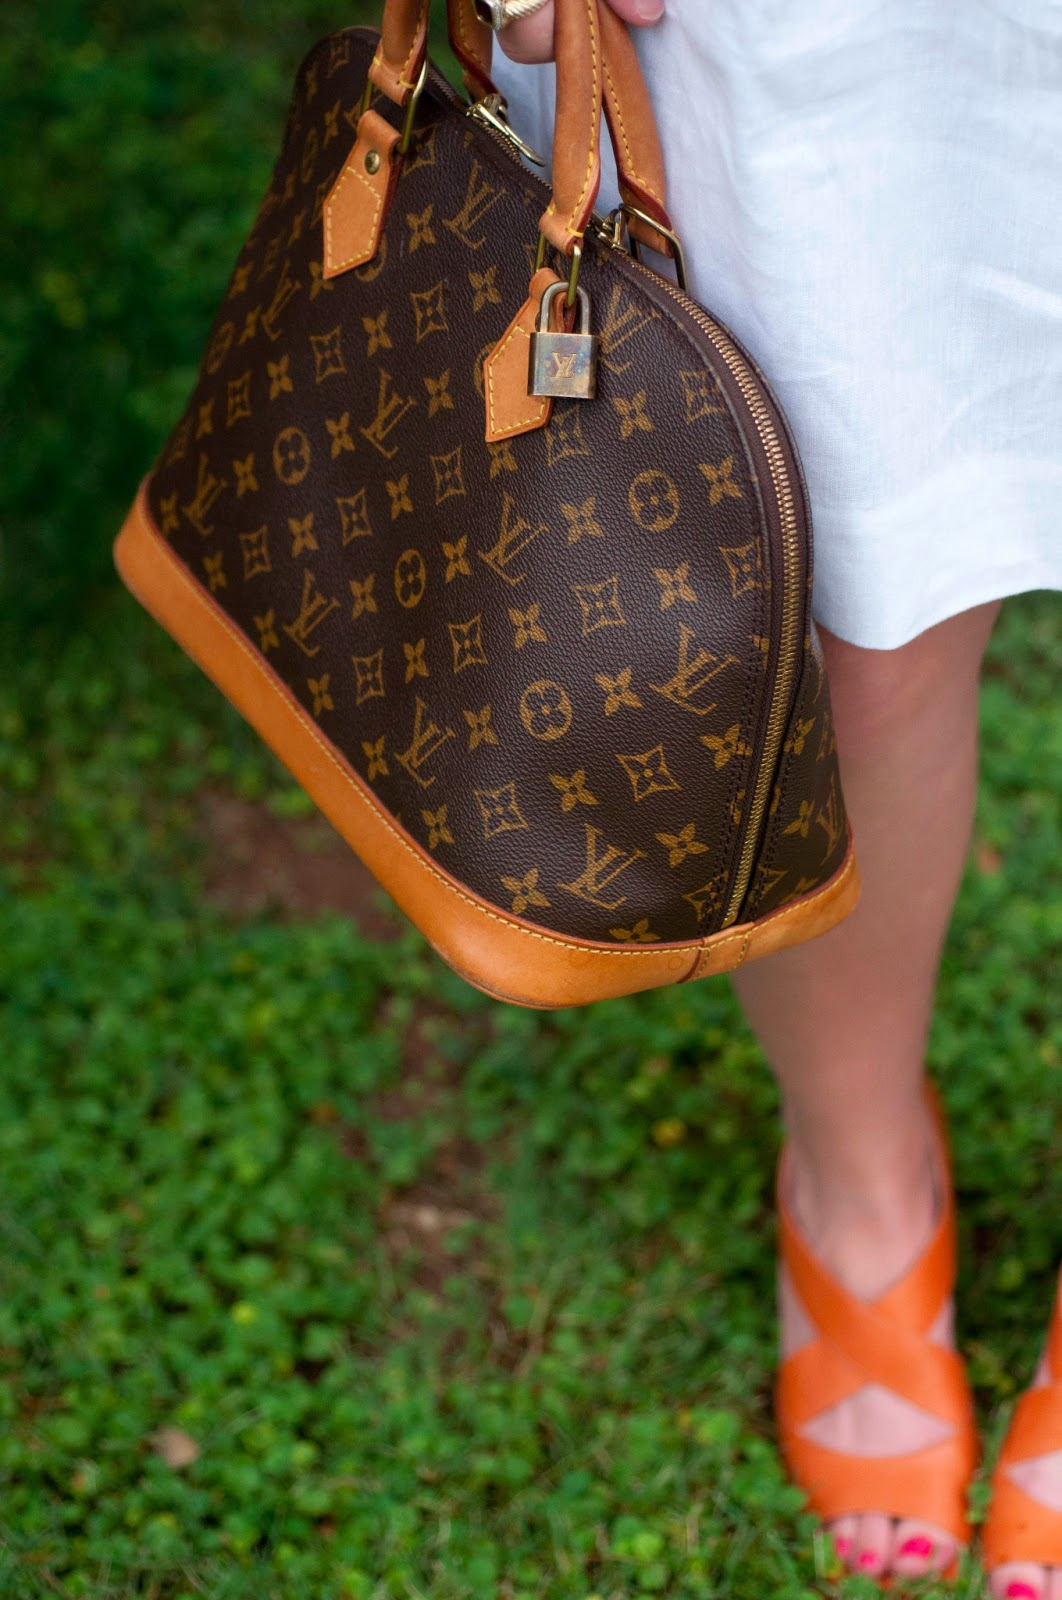 louis vuitton alma gm, louis vuitton classic monogram print, monogram print, louis vuitton, bcbg white skirt, white shirt, lv print, orange shoes